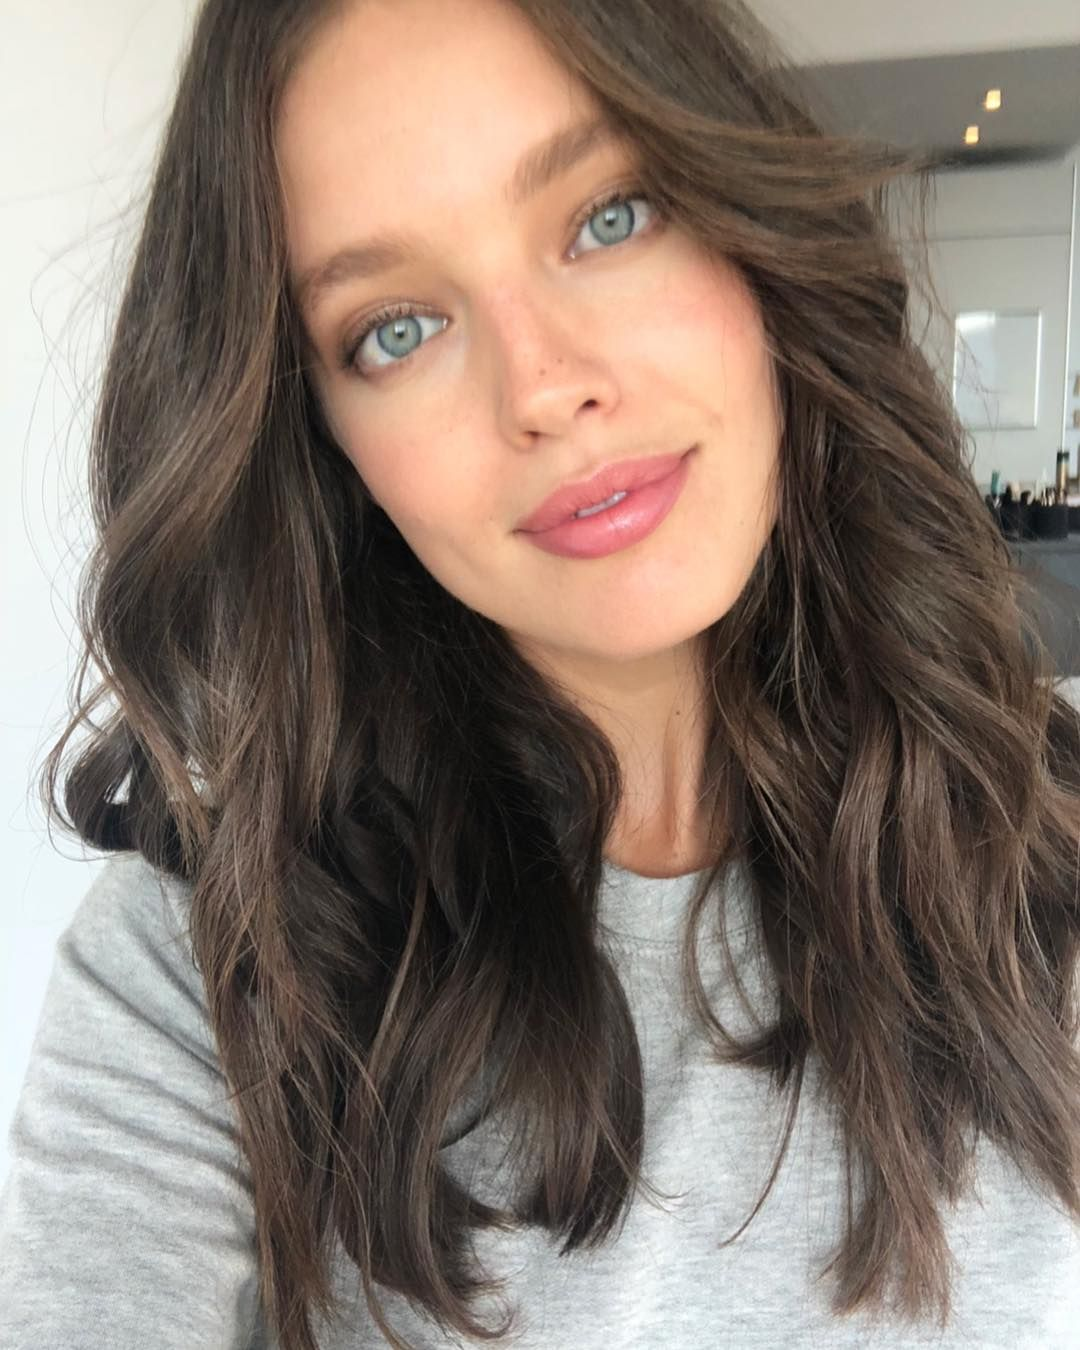 Emily DiDonato on Instagram: All natural makeup routine